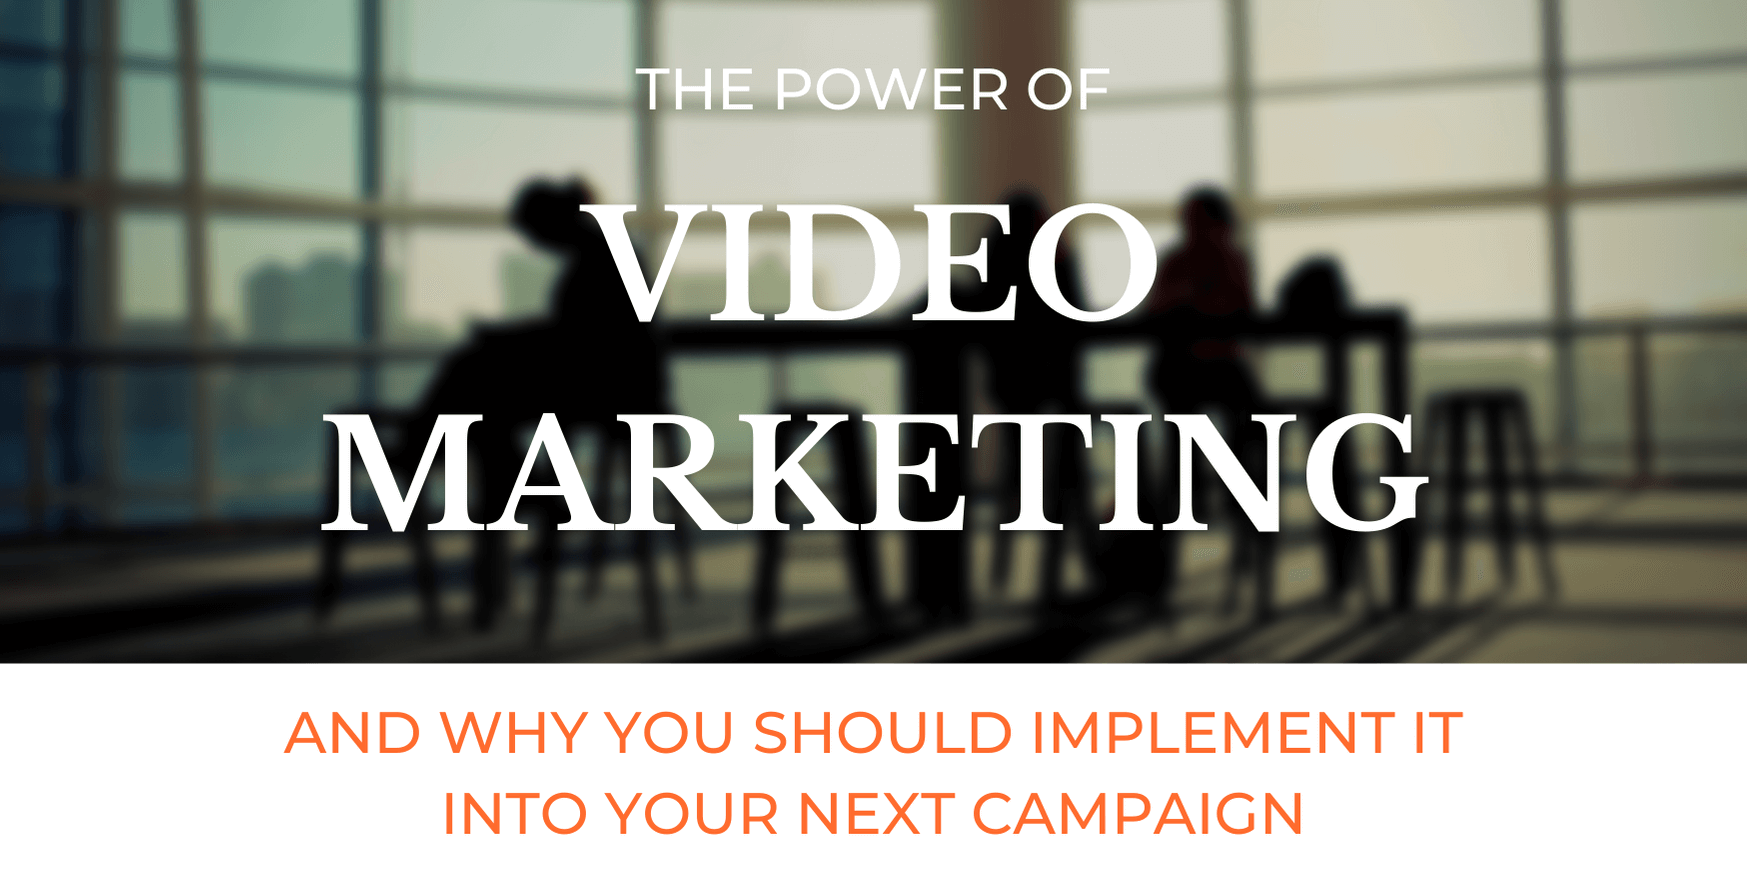 Tech Trends: Emergence of Video Marketing and Why It Has Become So Powerful